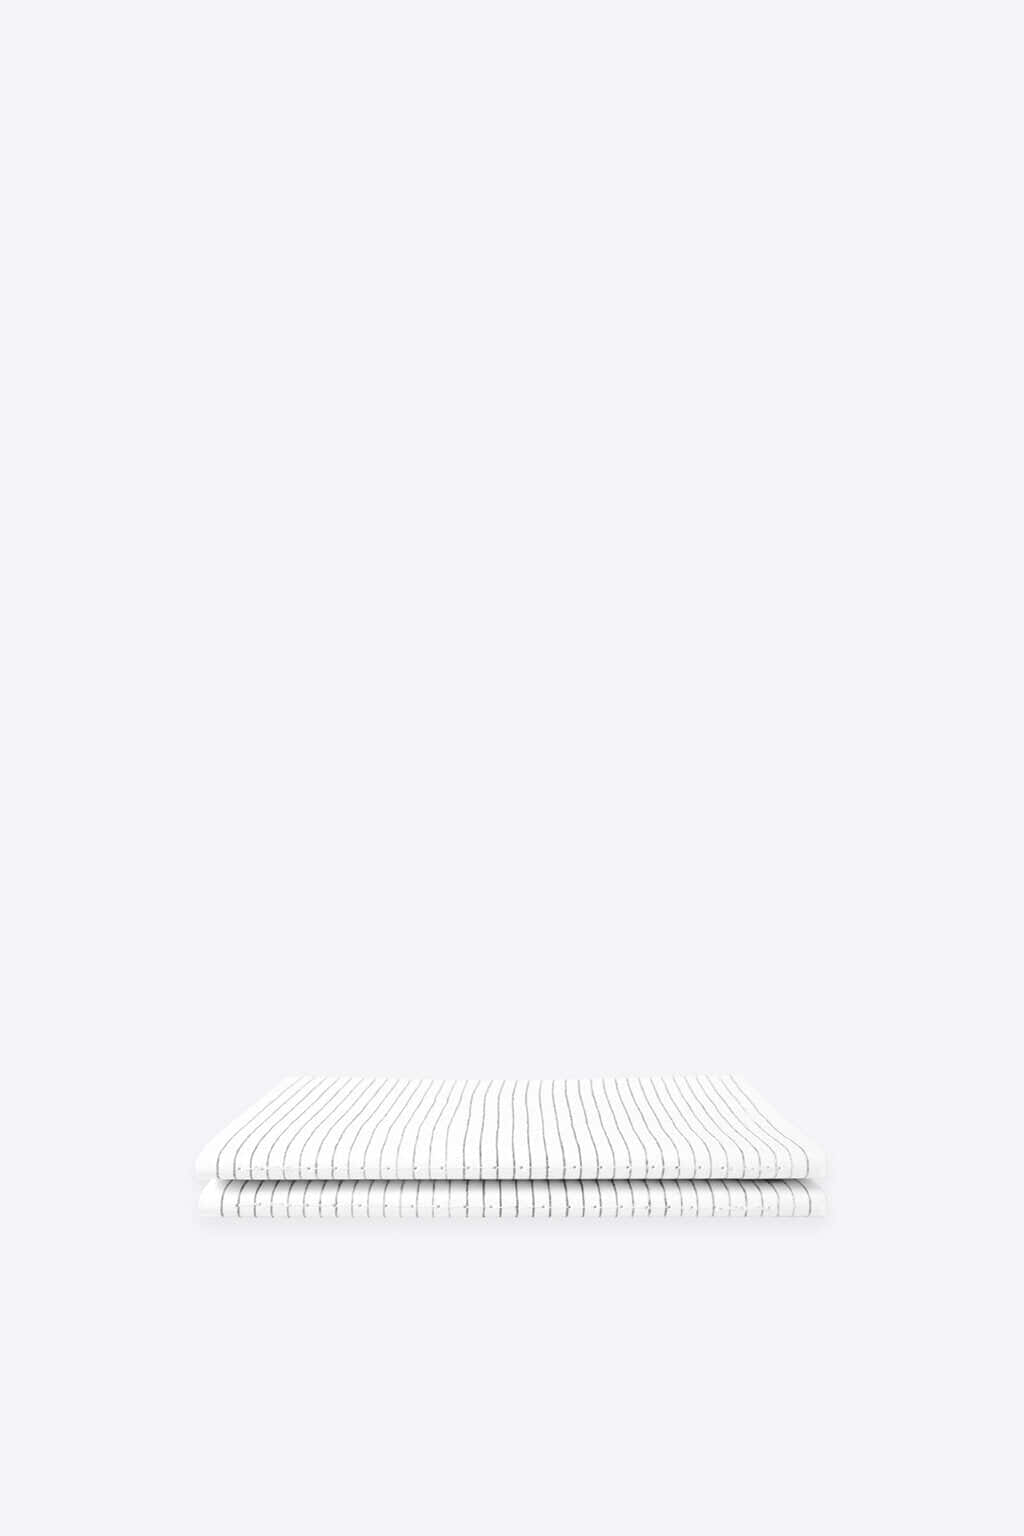 Lined Print Notebook 3306 White 2